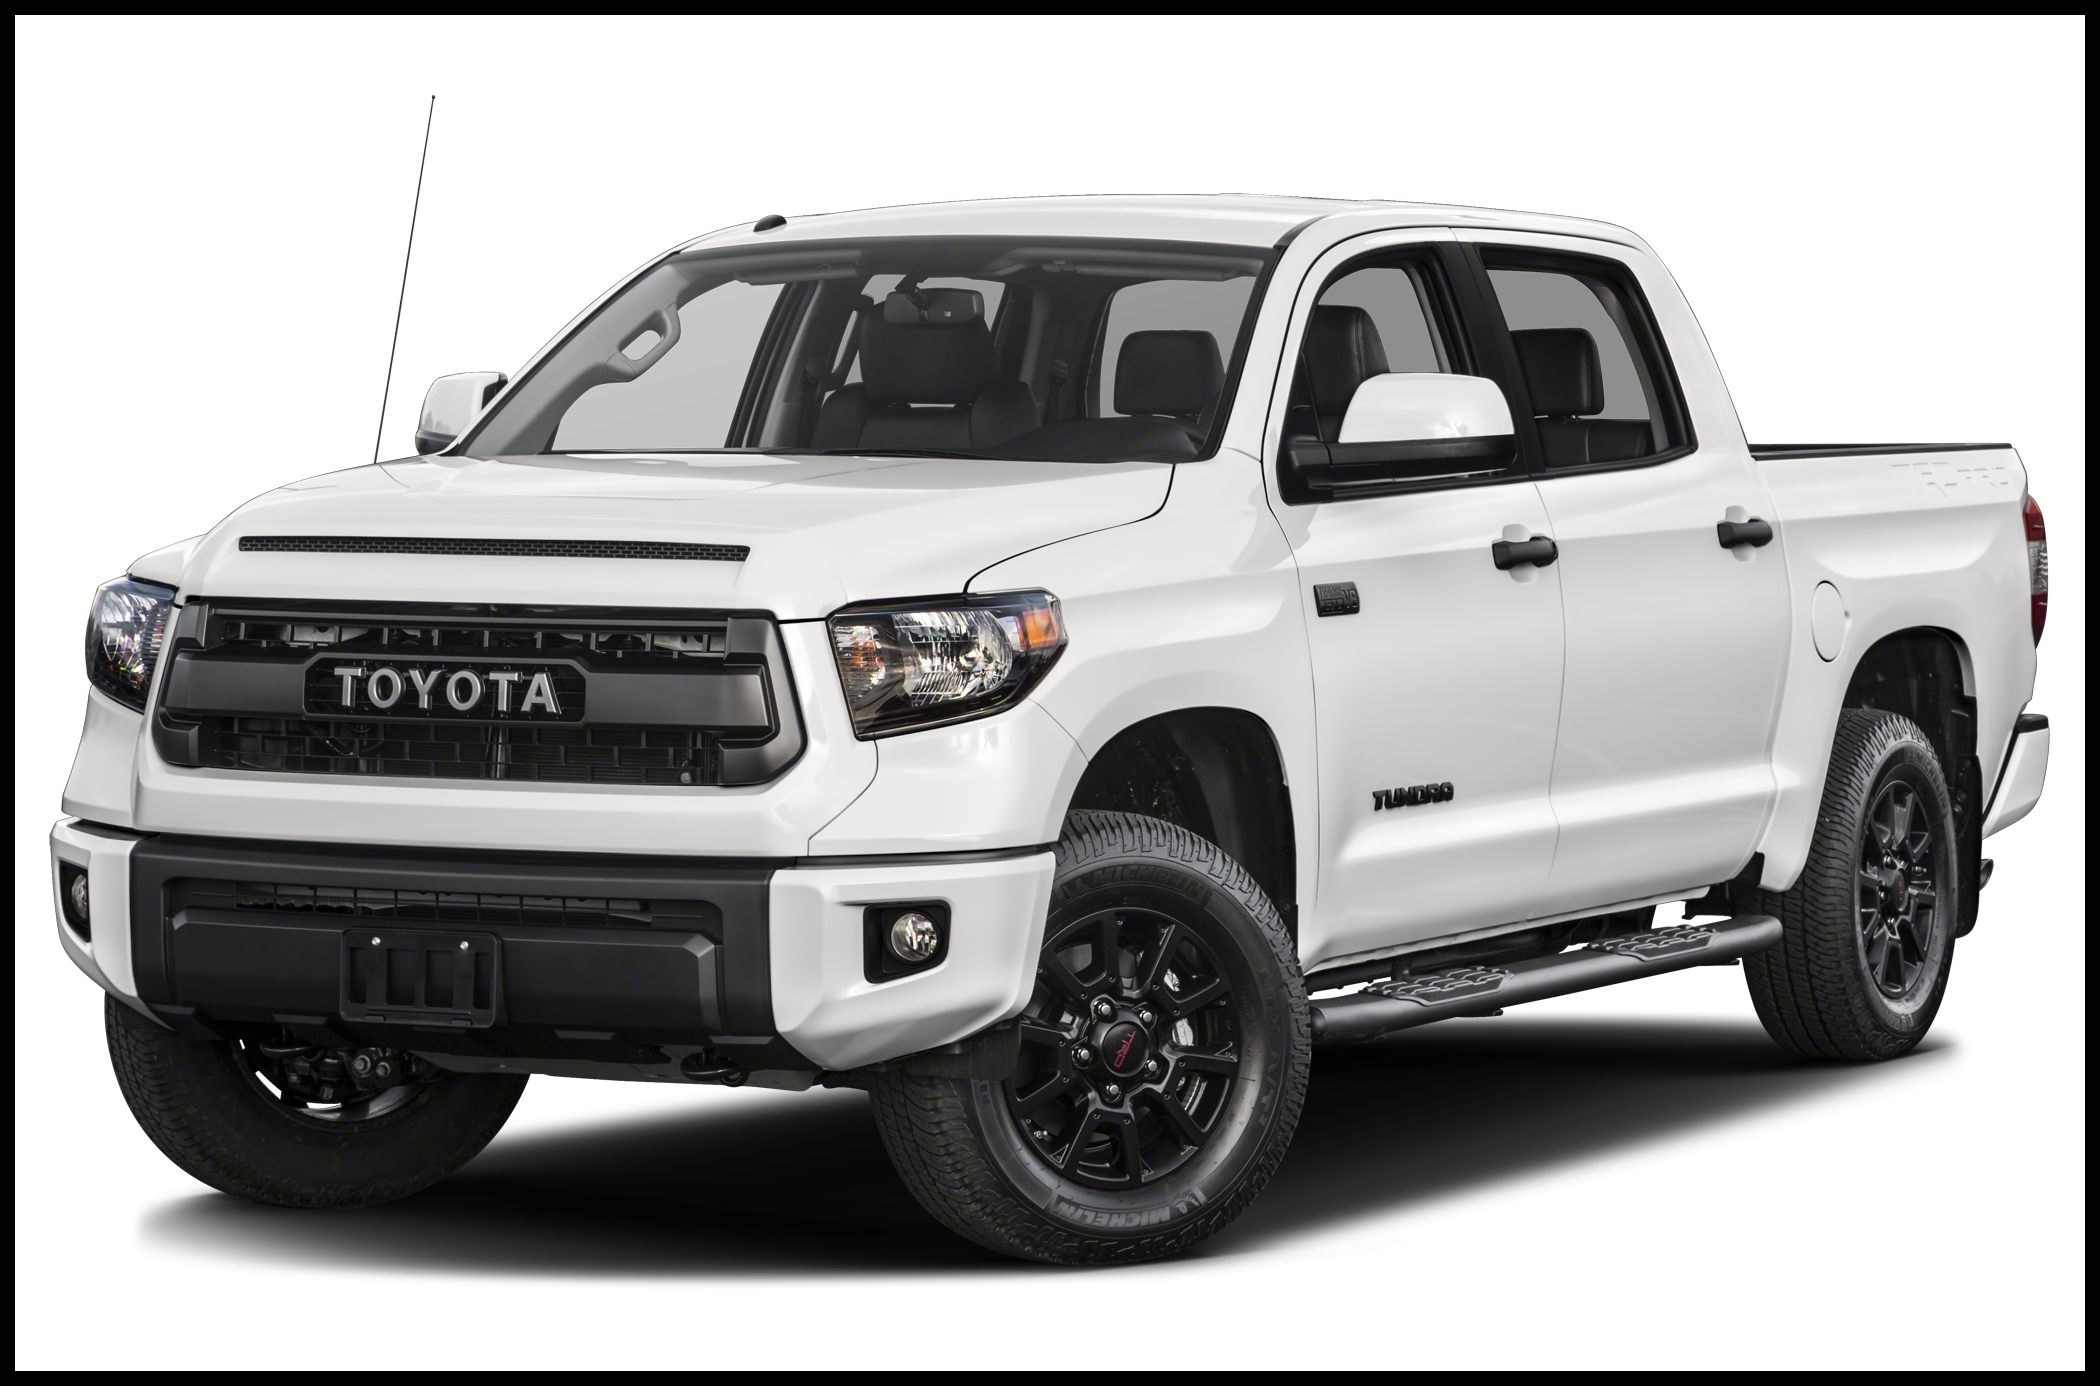 2017 Toyota Tundra TRD Pro 5 7L V8 4x4 CrewMax 5 6 ft box 145 7 in WB for Sale